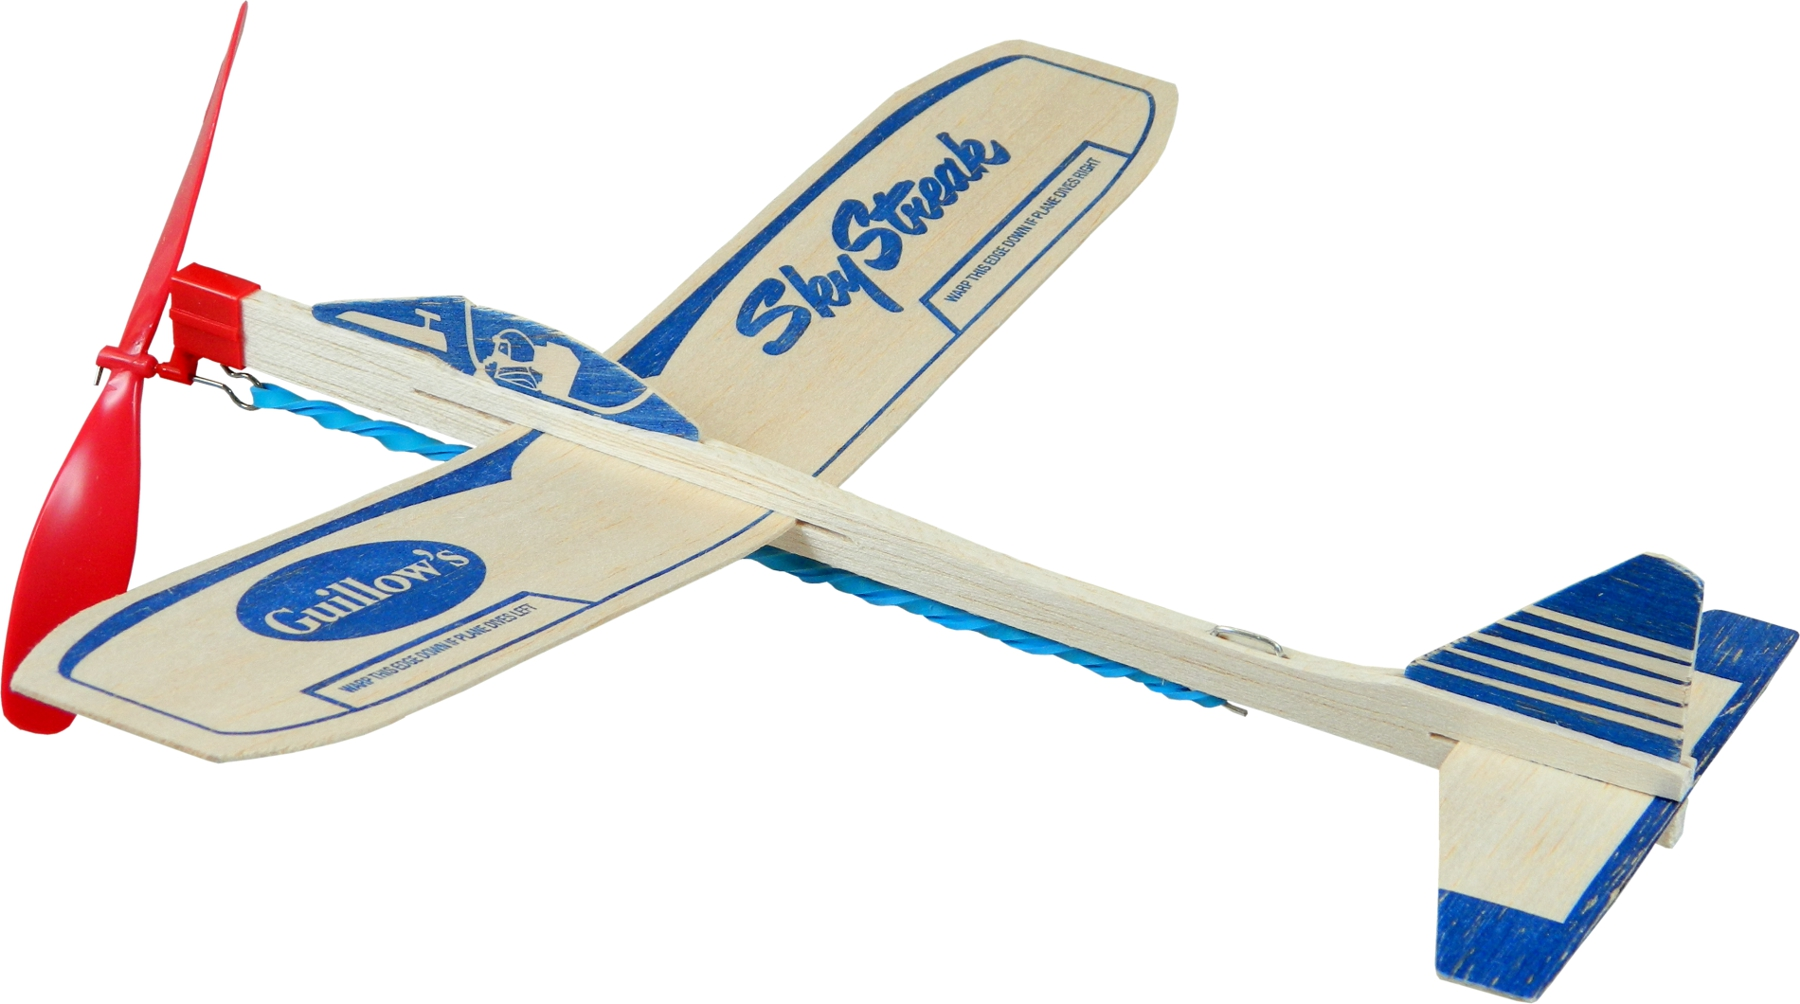 Darice® Guillow Sky Streak Balsa Wood Gliders